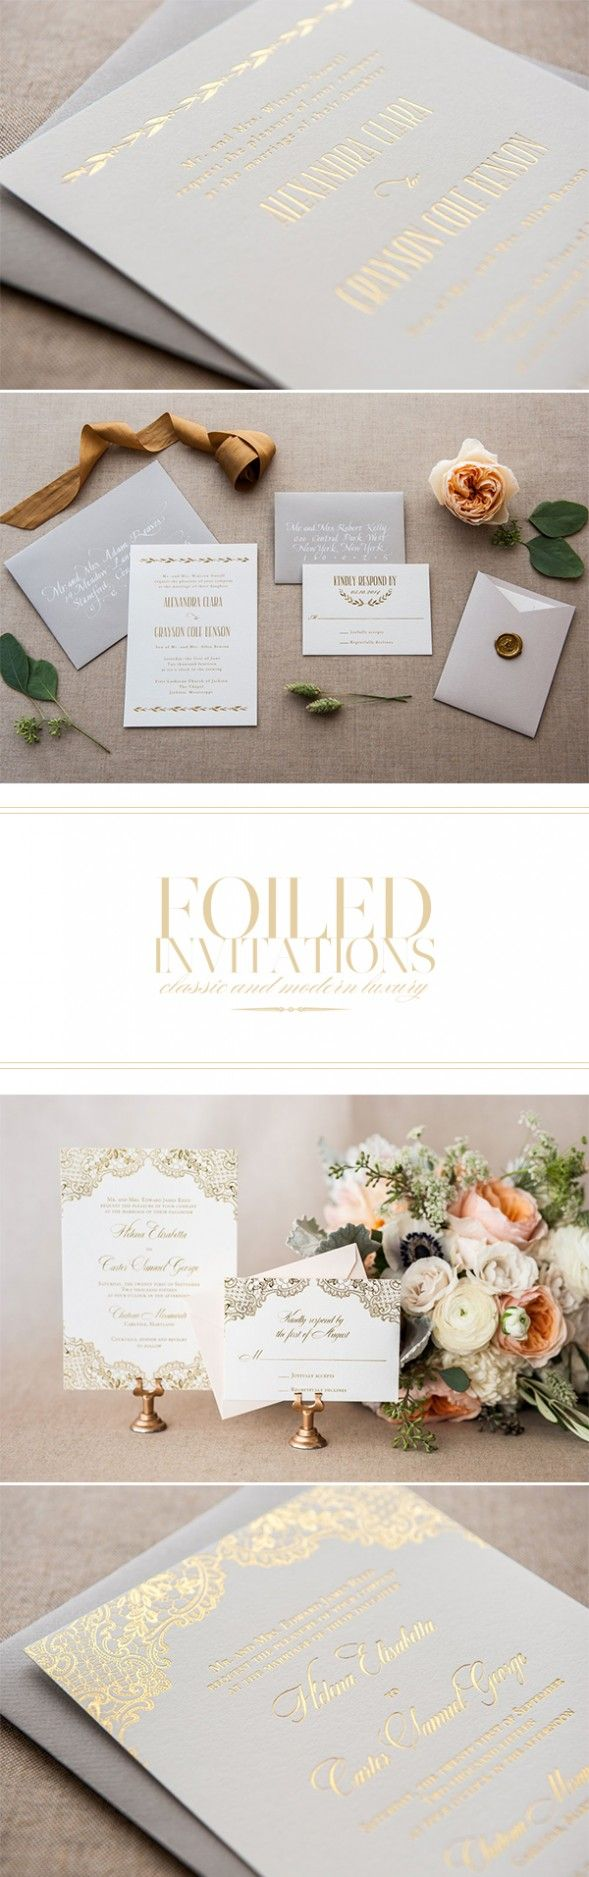 45 Best Wedding Images On Pinterest Wedding Inspiration Card